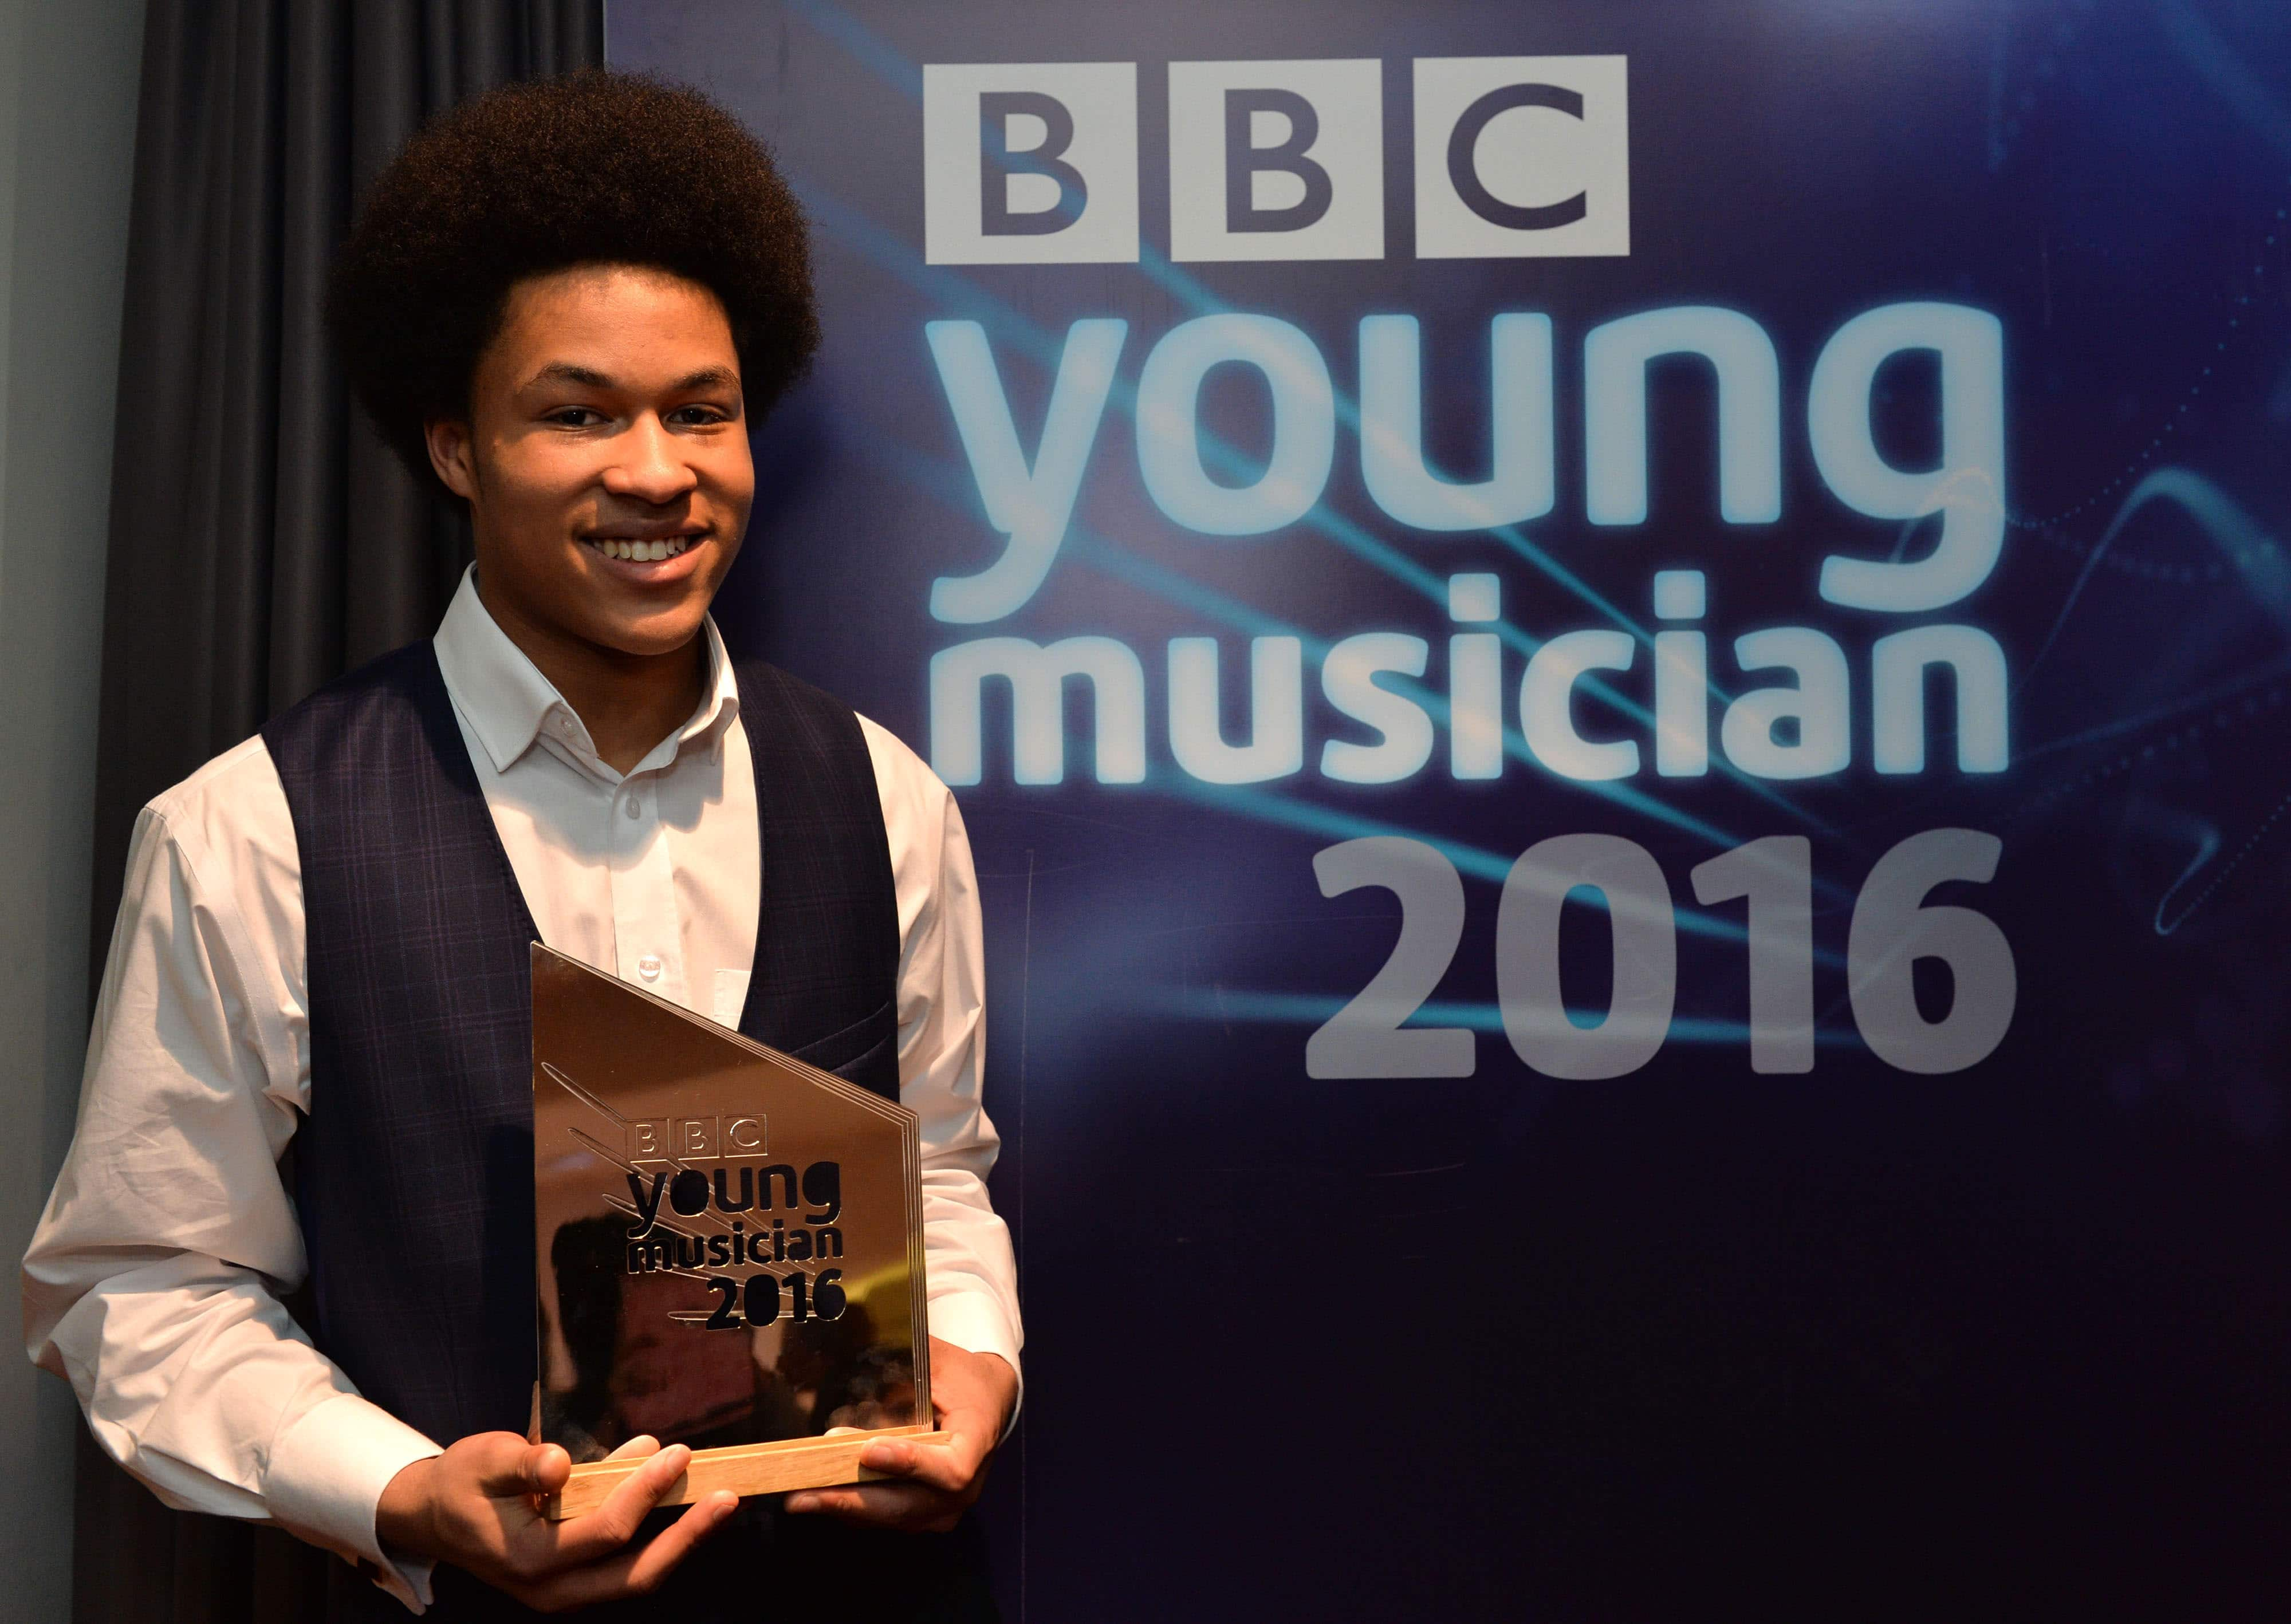 The winner of BBC Young Musician 2016, 17-year-old cellist Sheku Kanneh-Mason with his award at the Barbican, London on Sunday 15 May. Sheku performed ShostakovichÕs Cello Concerto no. 1 with the BBC Symphony Orchestra conducted by Mark Wigglesworth. The BBC Young Musician 2016 Final is broadcast on BBC Four at 7pm and BBC Radio 3 at 7:30pm on Sunday 15 May. Photo by Mark Allan/BBC